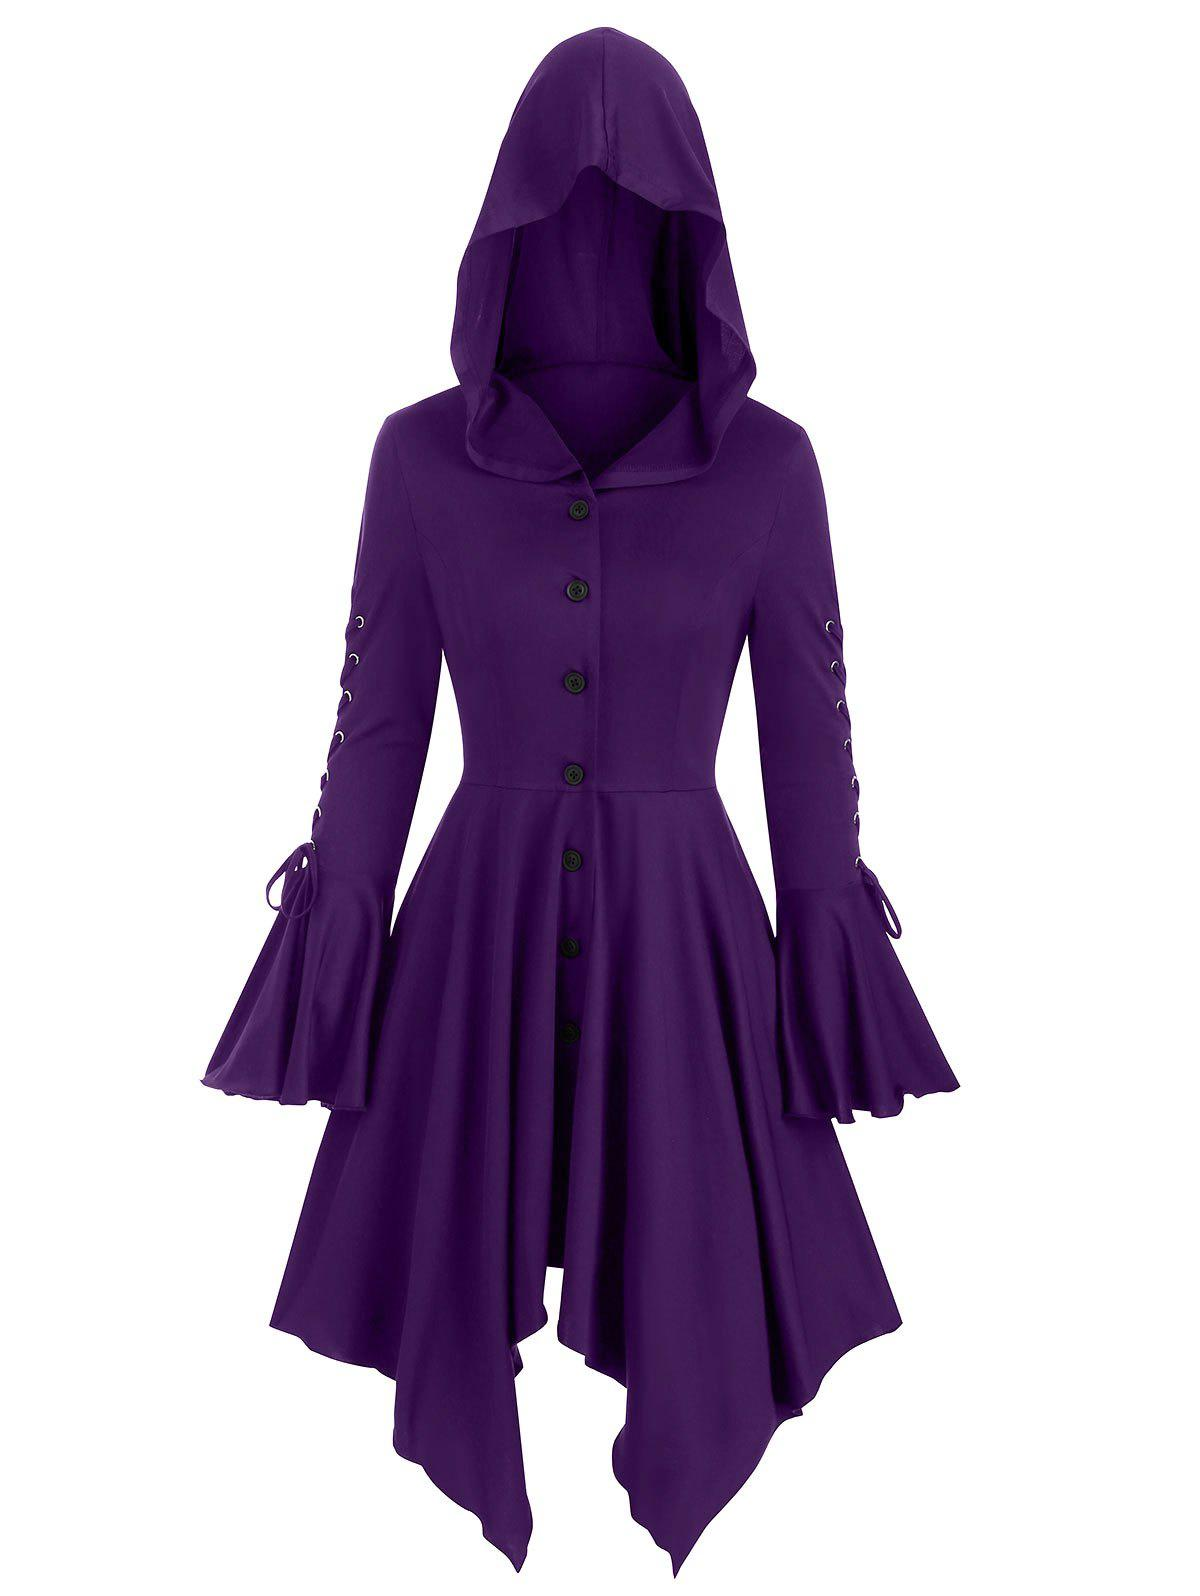 Chic Lace-up Poet Sleeve Hooded Hanky Hem Gothic Skirted Coat